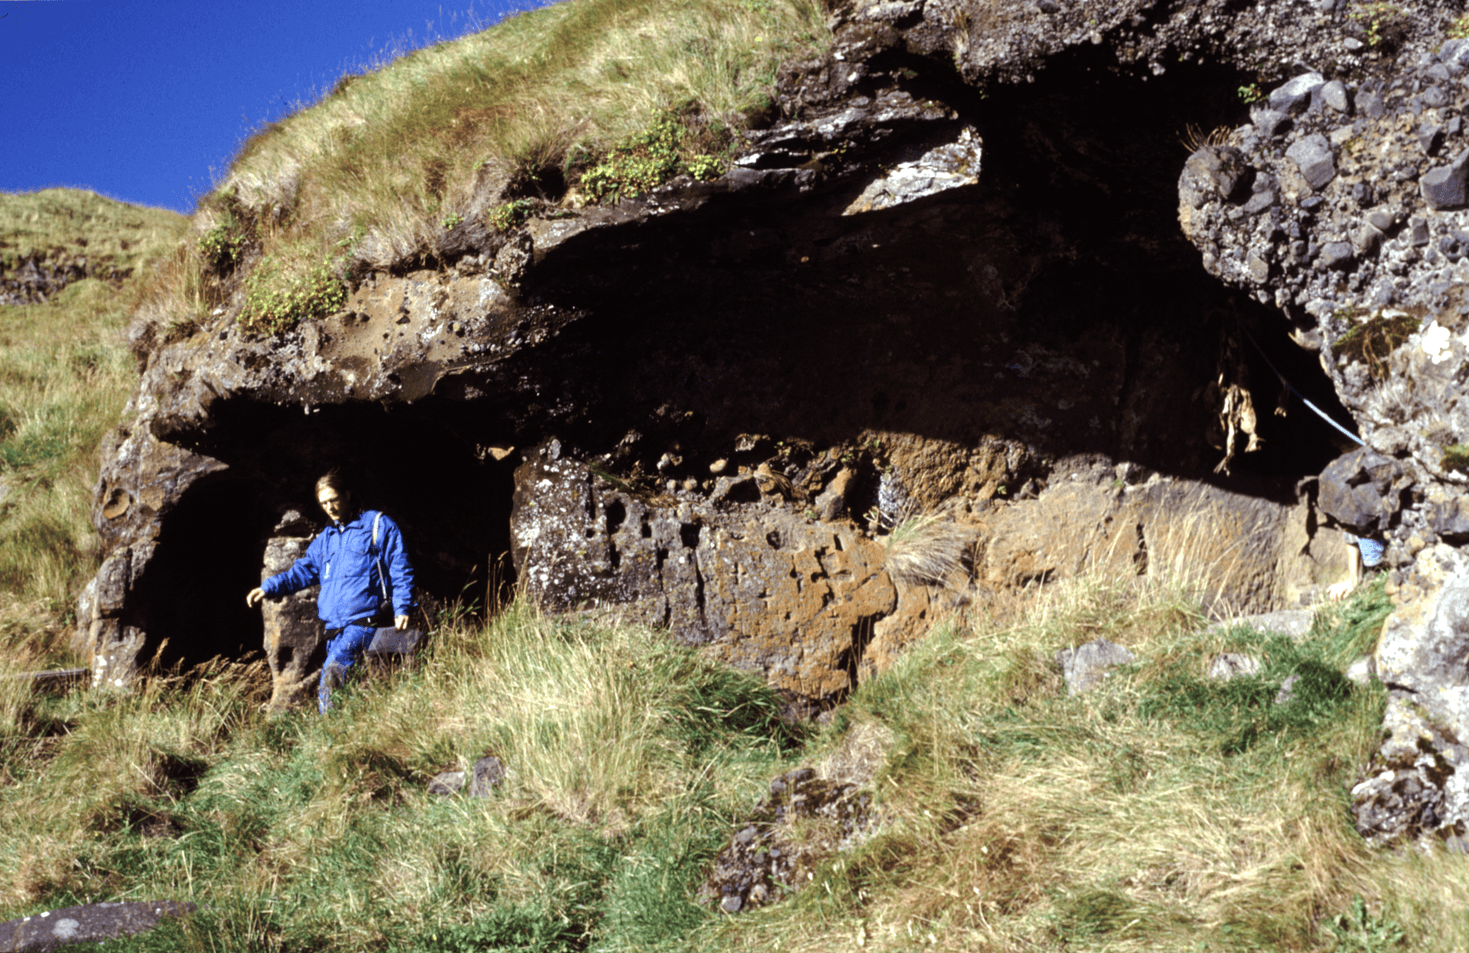 Seljalandshellar cave in the Westman Islands  - Photo by Kristjan Ahronson